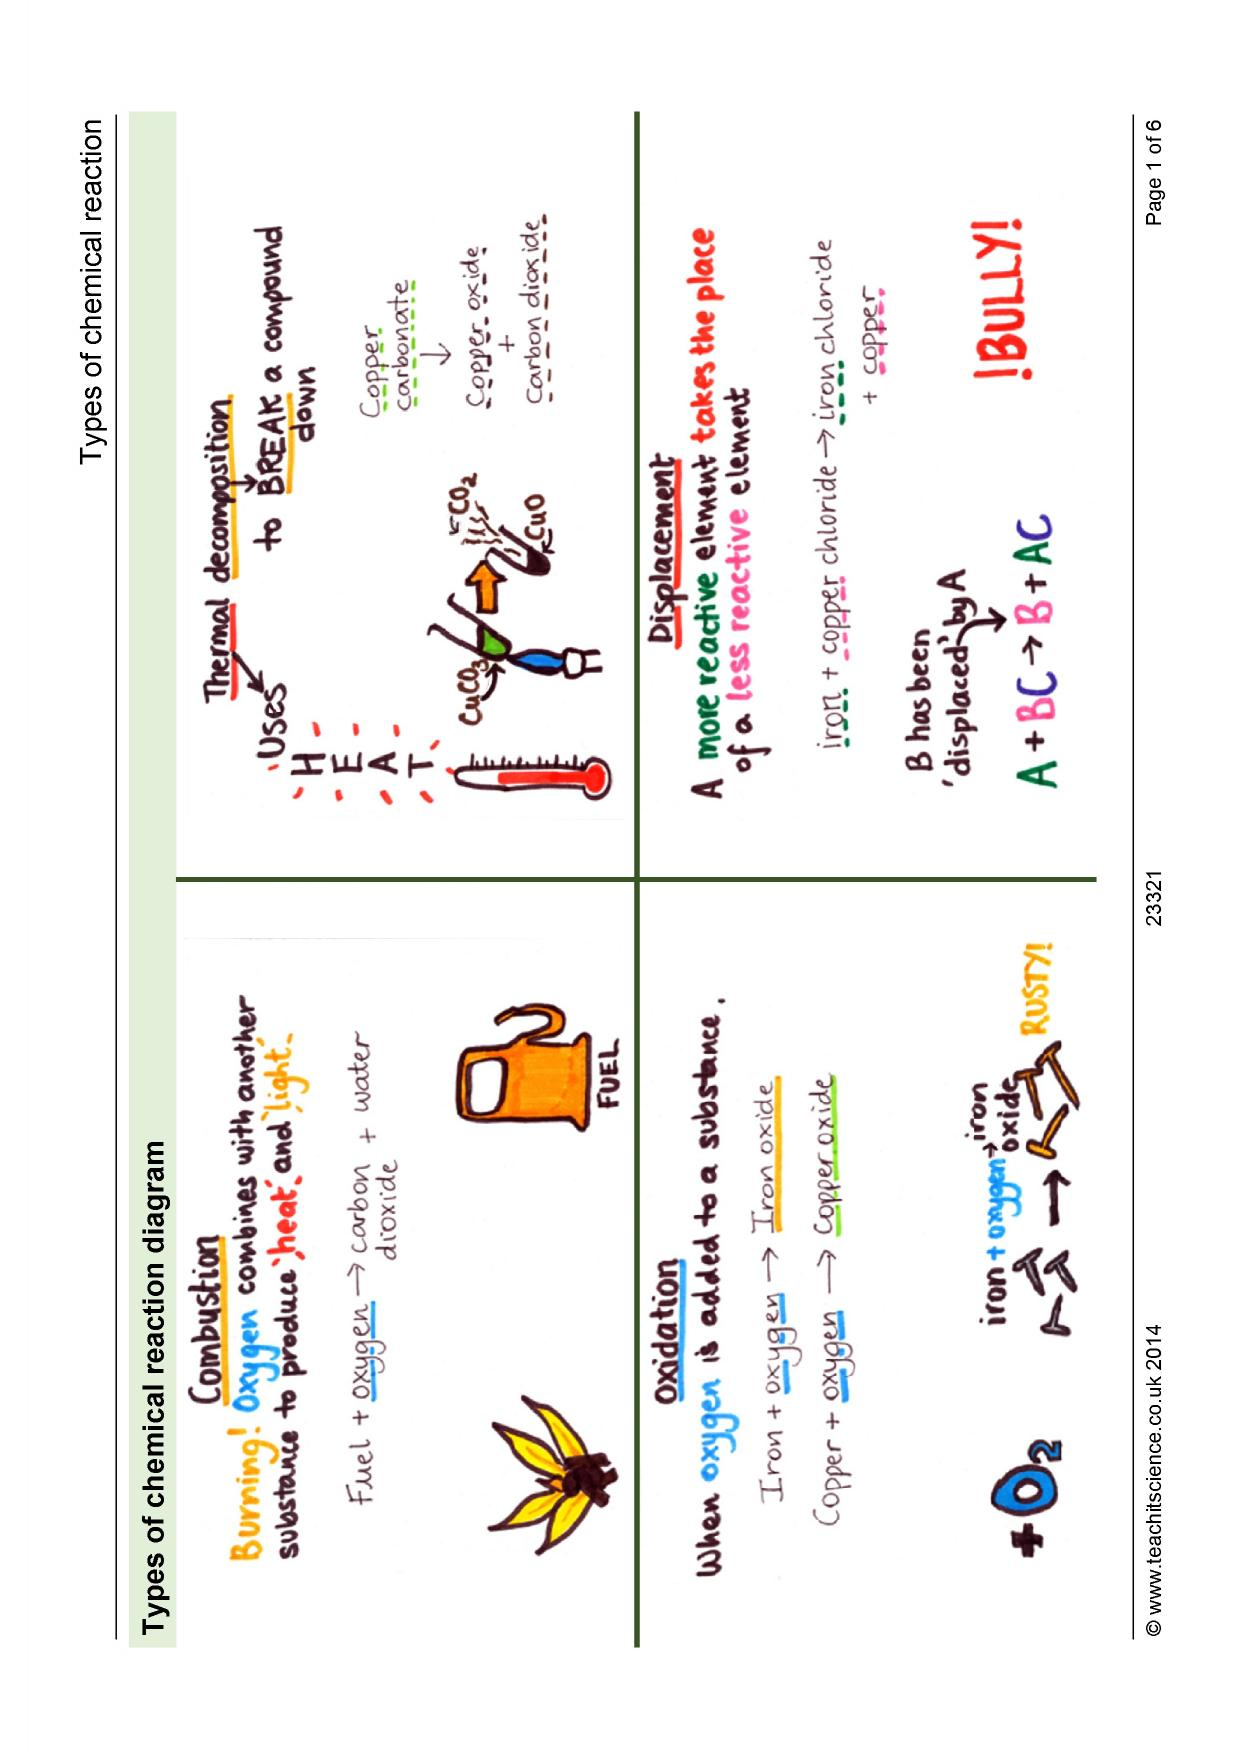 Chemical Reactions And Energetics Ks3